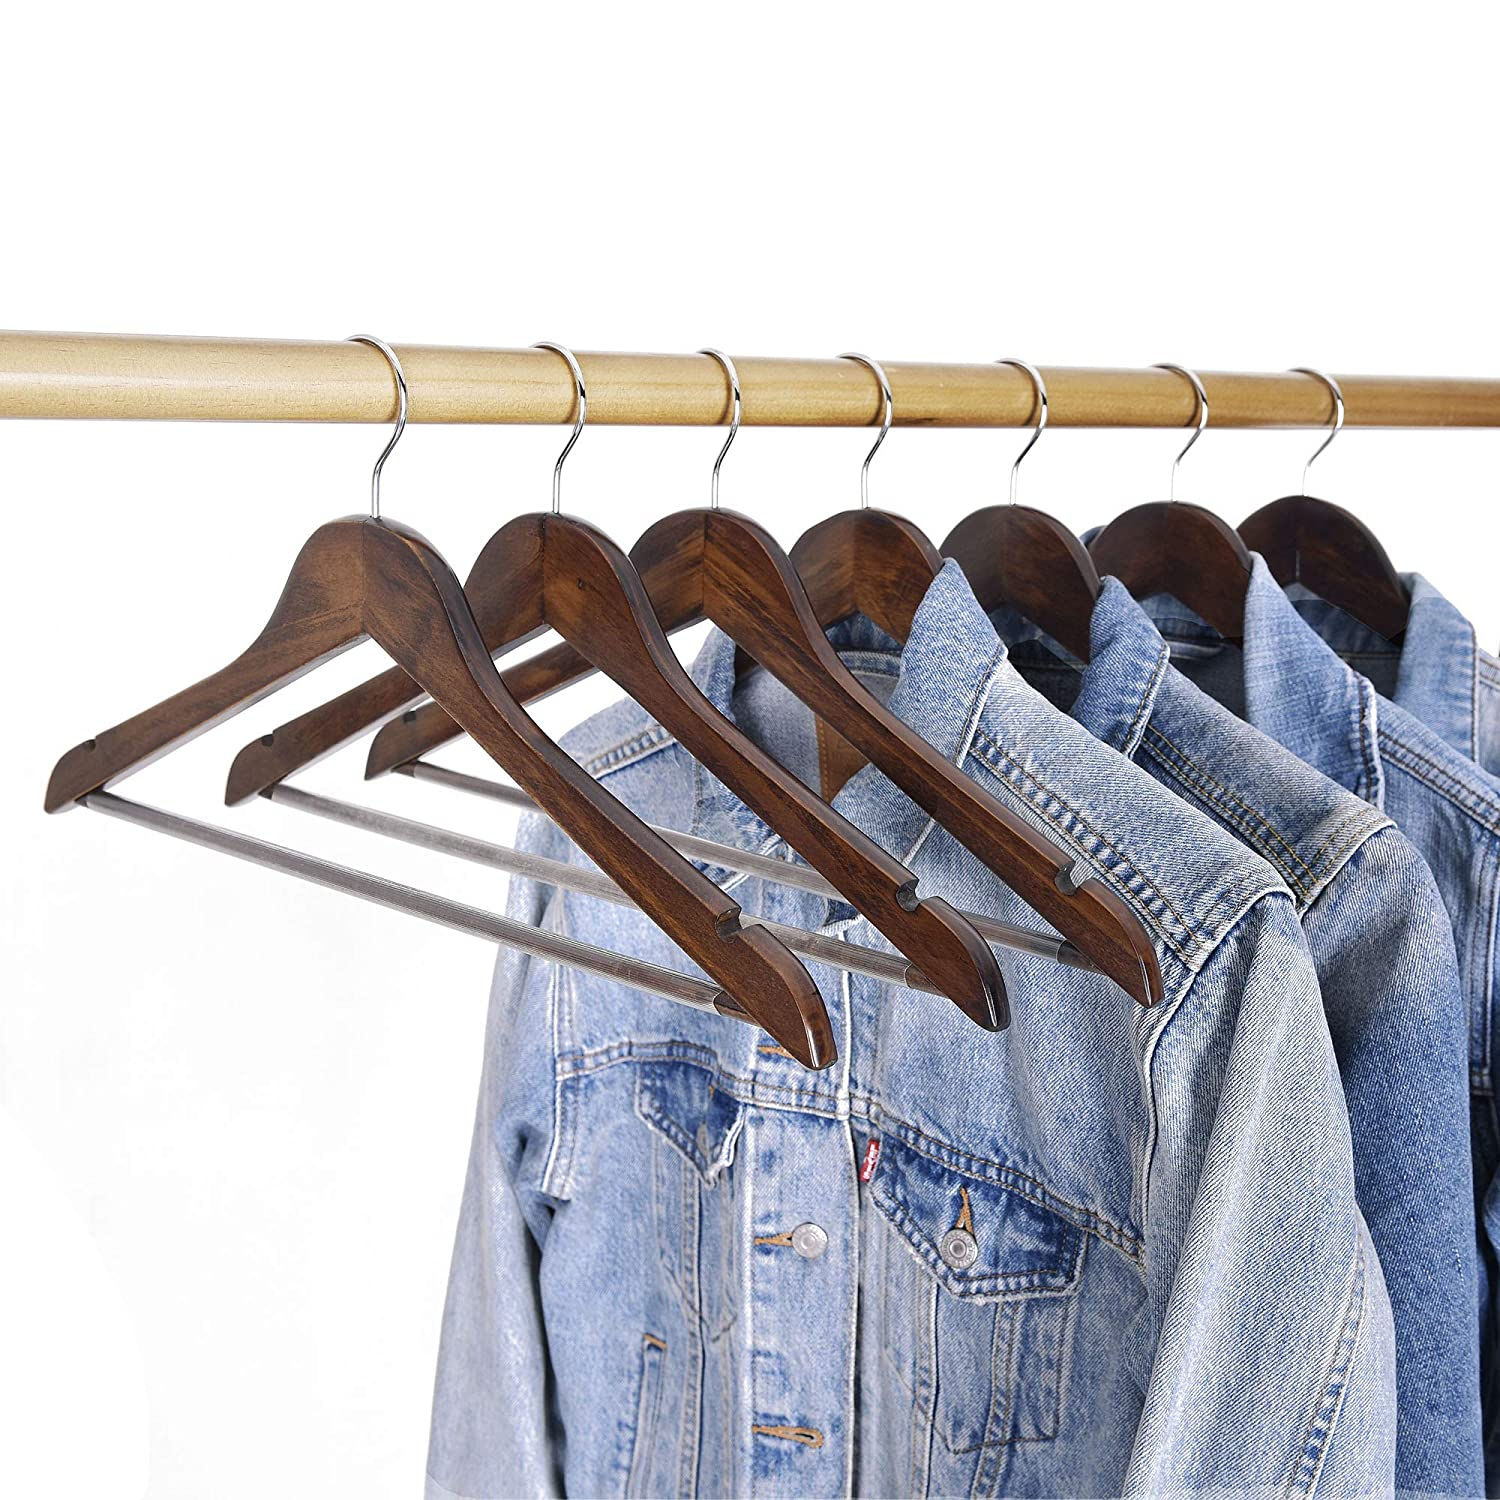 Natural Finish StorageWorks 6-Pack Solid Wooden Extra-Wide Shoulder Suit Hangers with Anti-Rust 360 Degree Swivel Hook